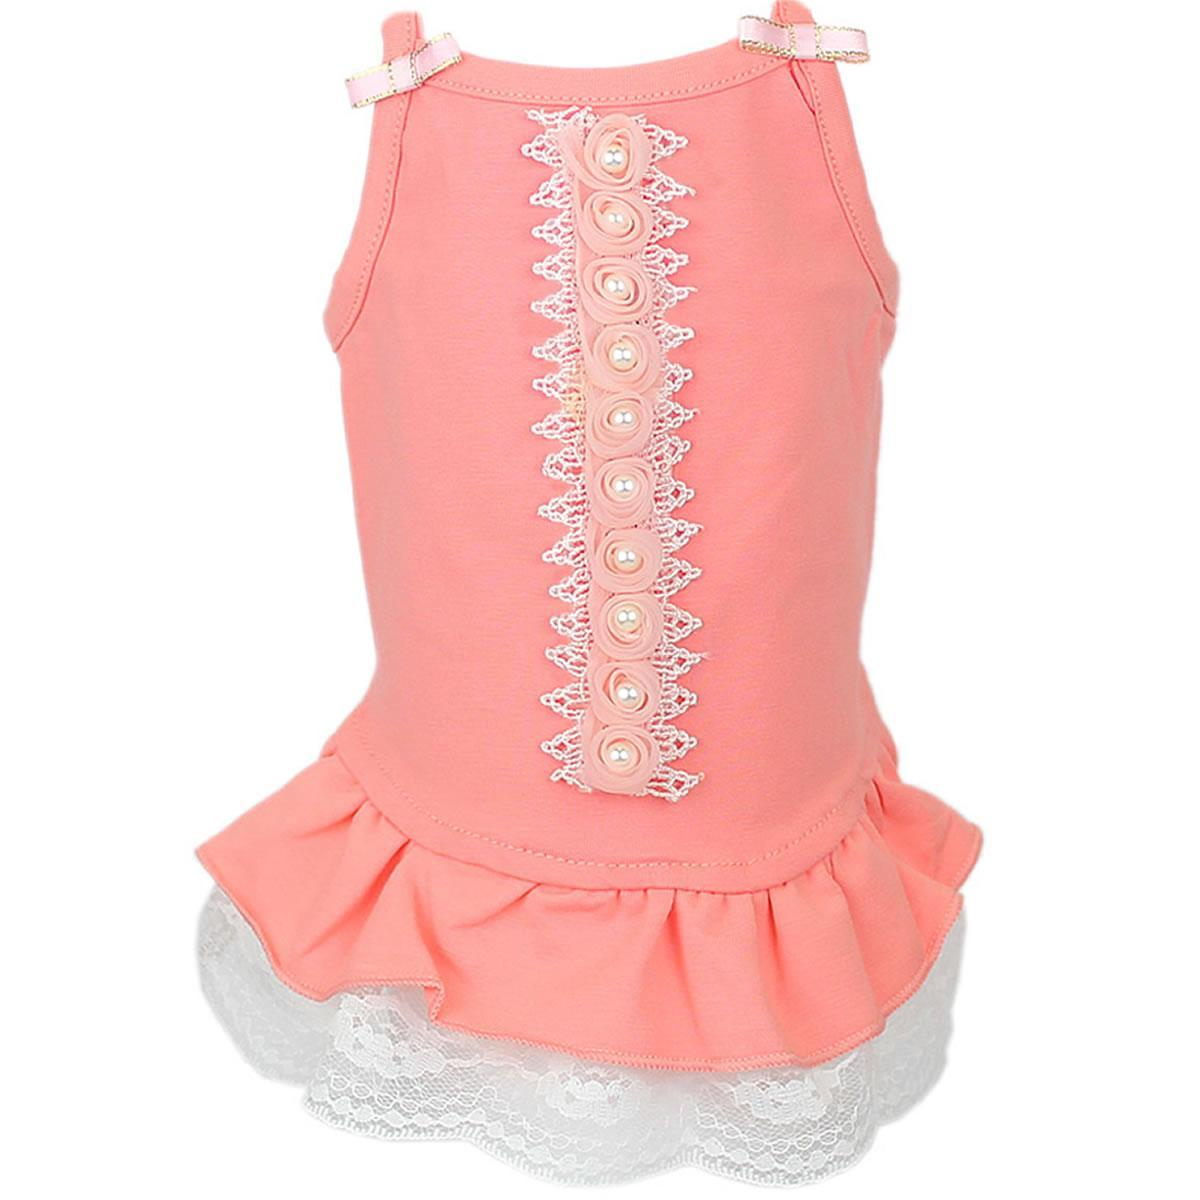 Roses & Pearls Dog Dress by Parisian Pet - Peach